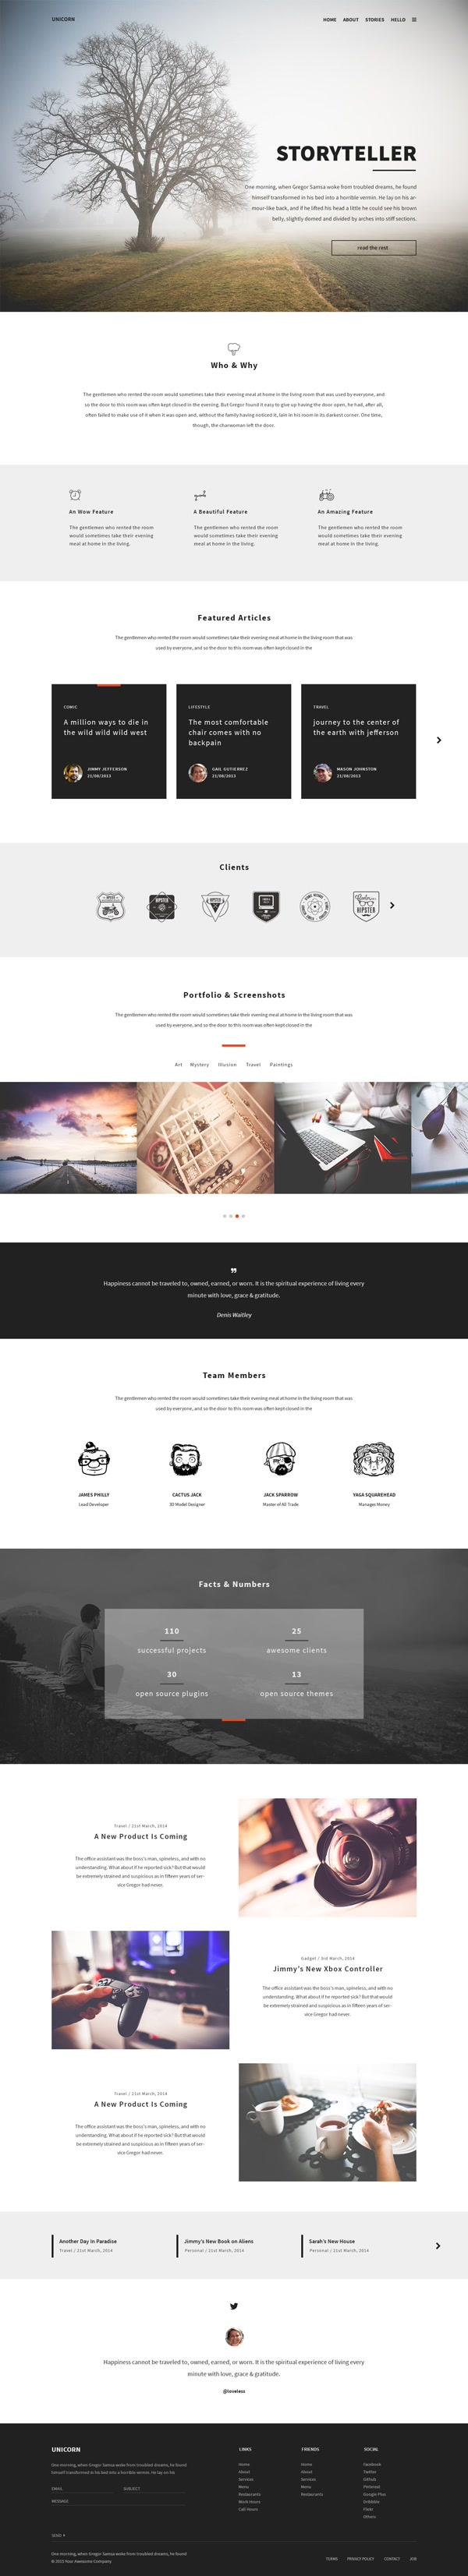 UNICORN PSD TEMPLATE - Hope it can help with your design. Feel free to download it all without any requirement on http://getfreeresources.com